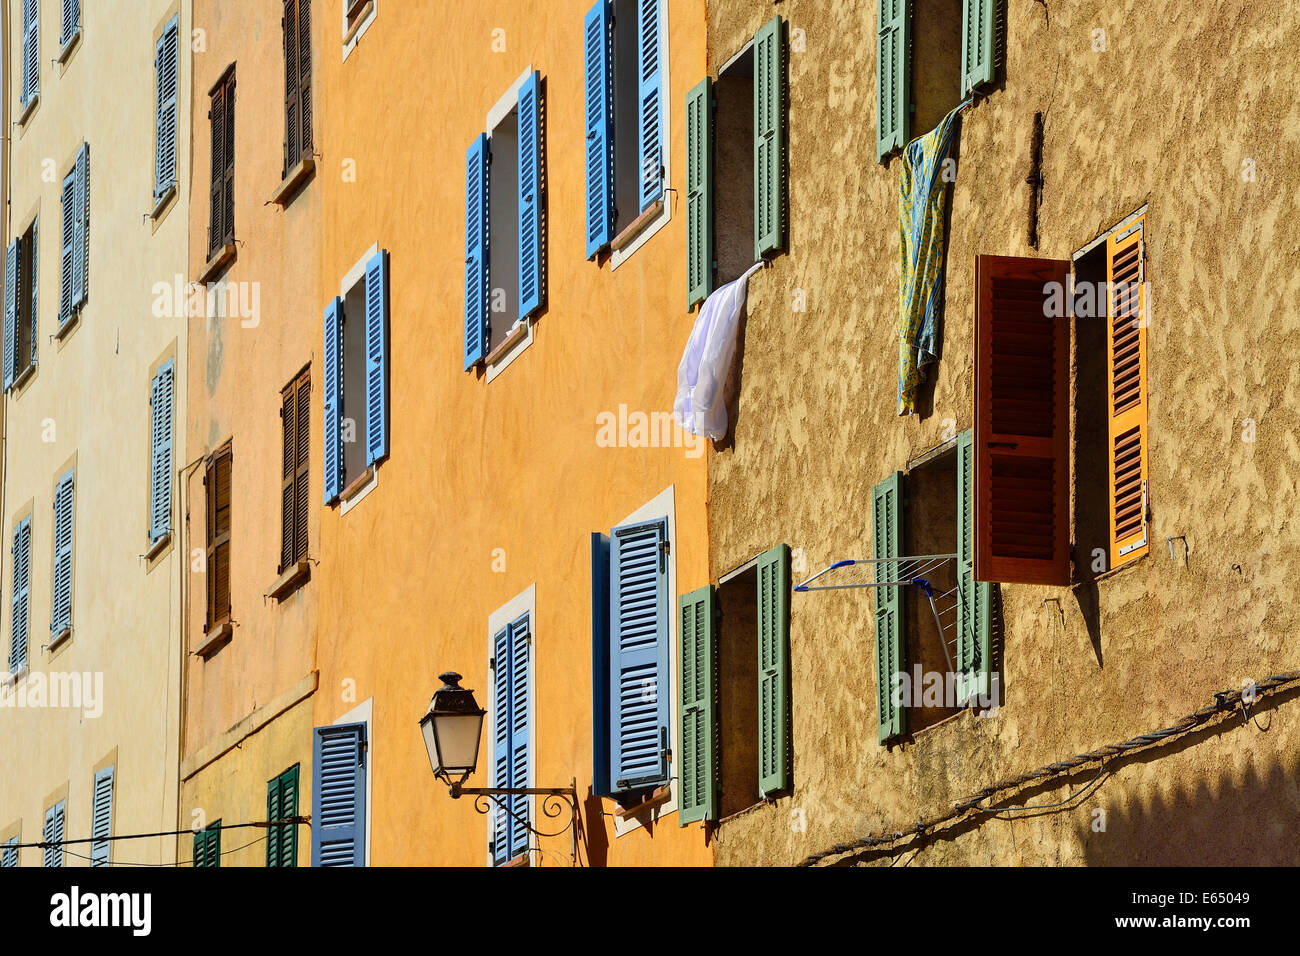 Row of houses with colourful shutters, L'Île Rousse, Balagne, Corsica, France Stock Photo